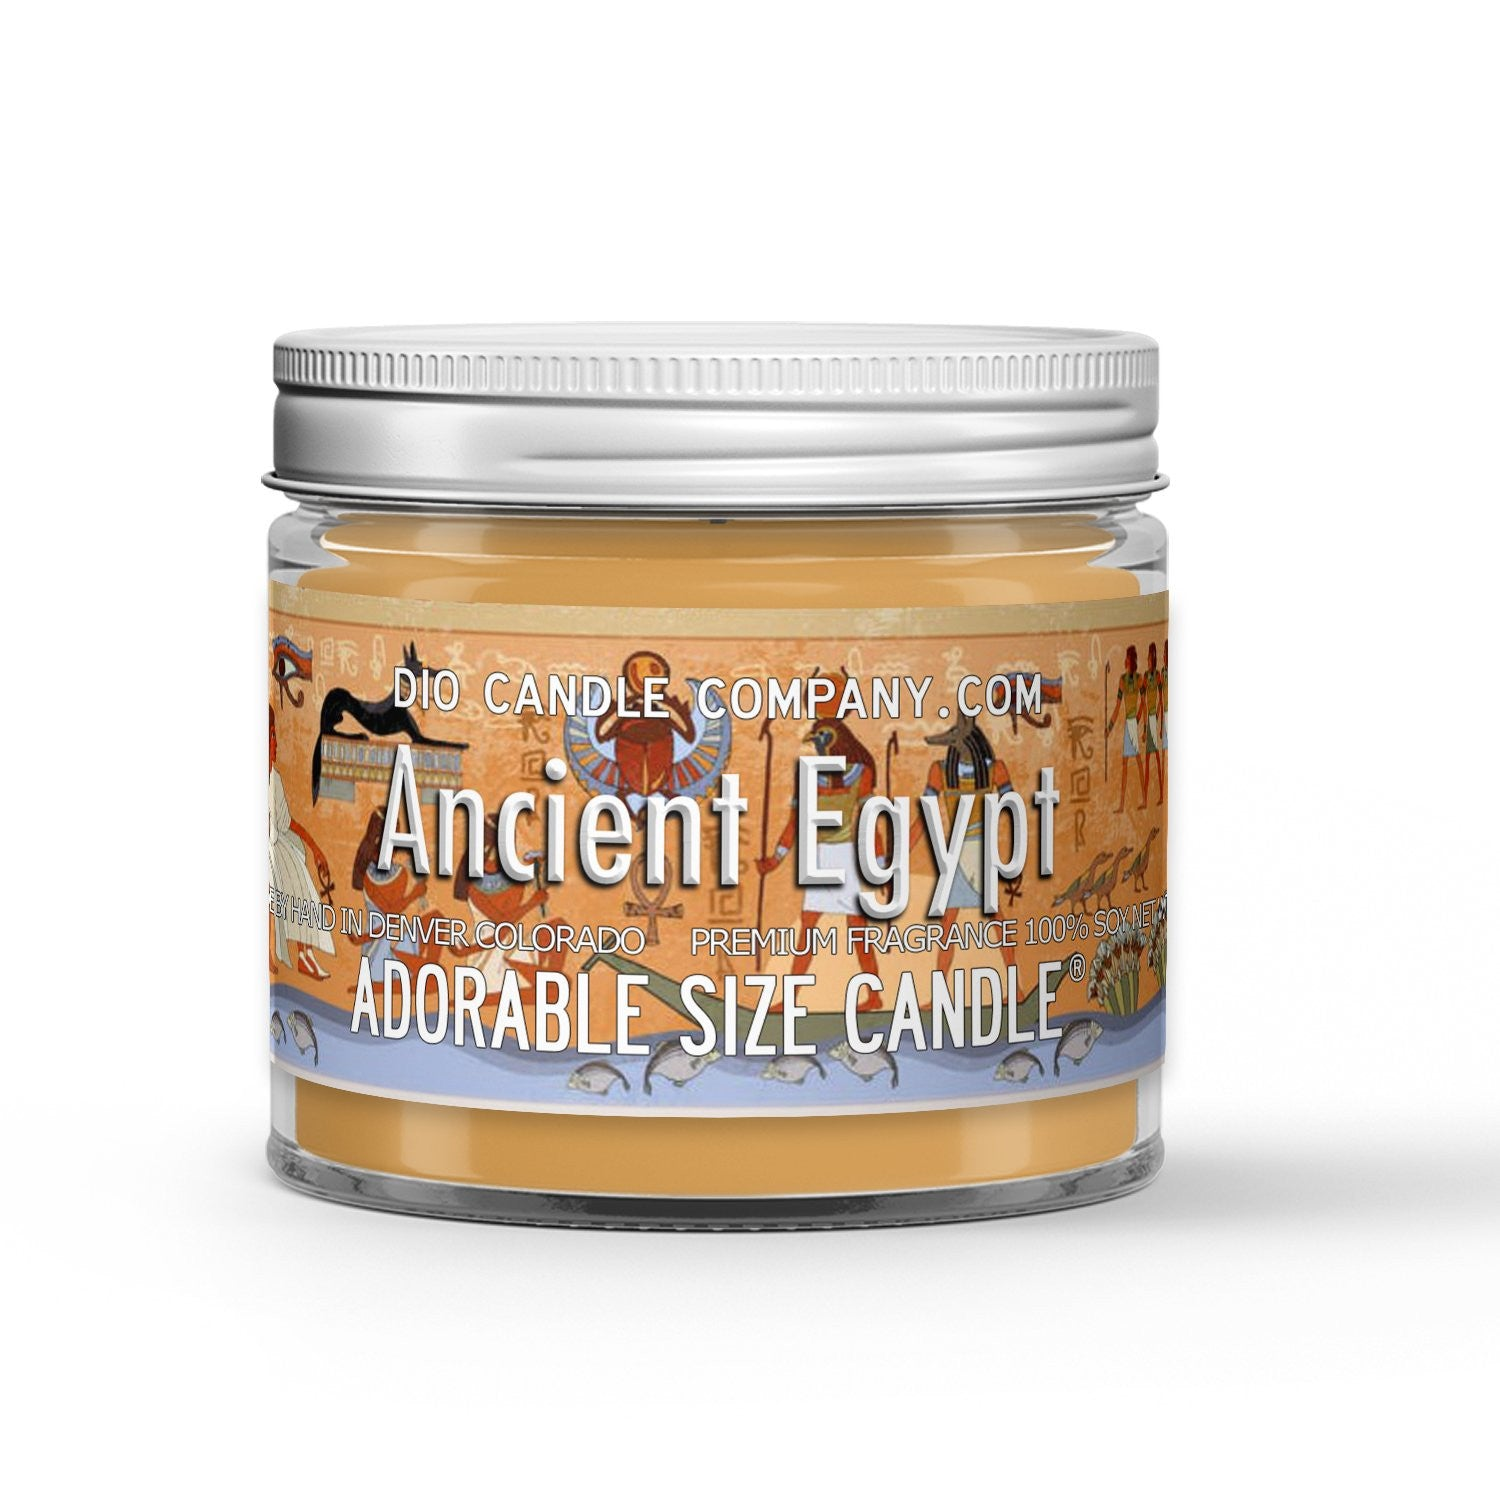 Ancient Egypt Candle - Ancient Amber - 1oz Adorable Size Candle® - Dio Candle Company